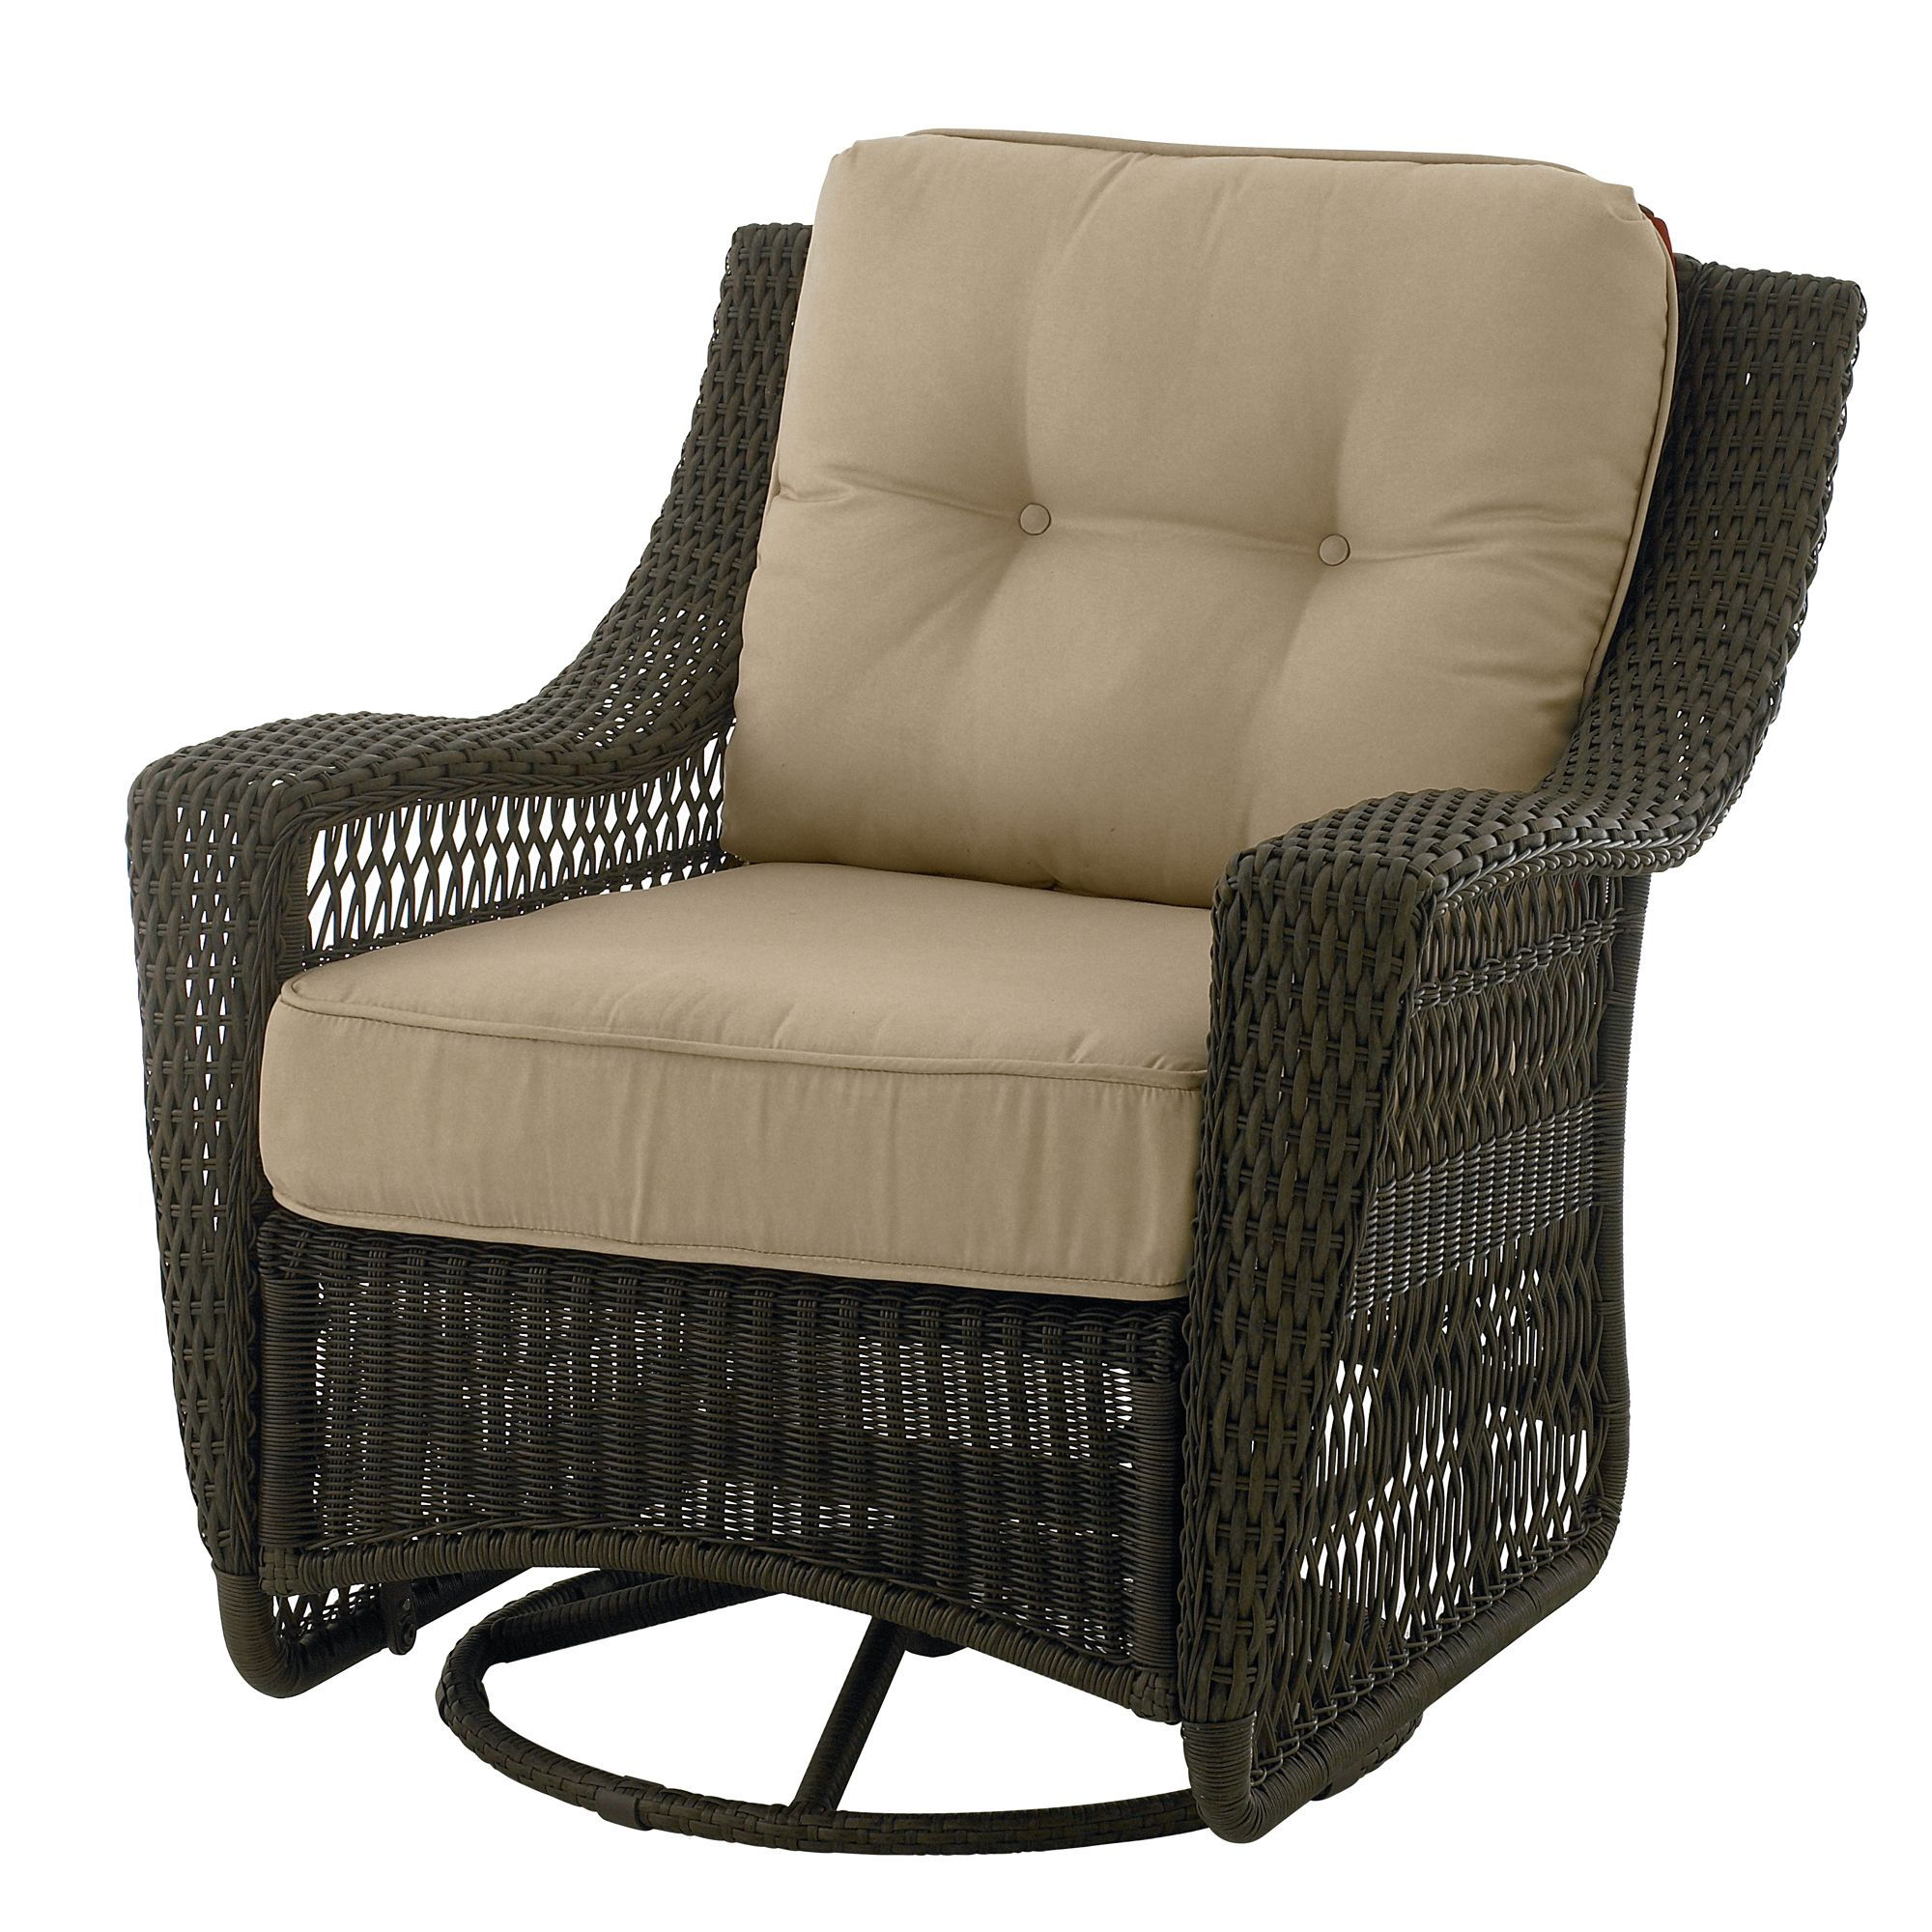 Stunning Country Living Concord Swivel Glider Patio Chair swivel glider patio chairs